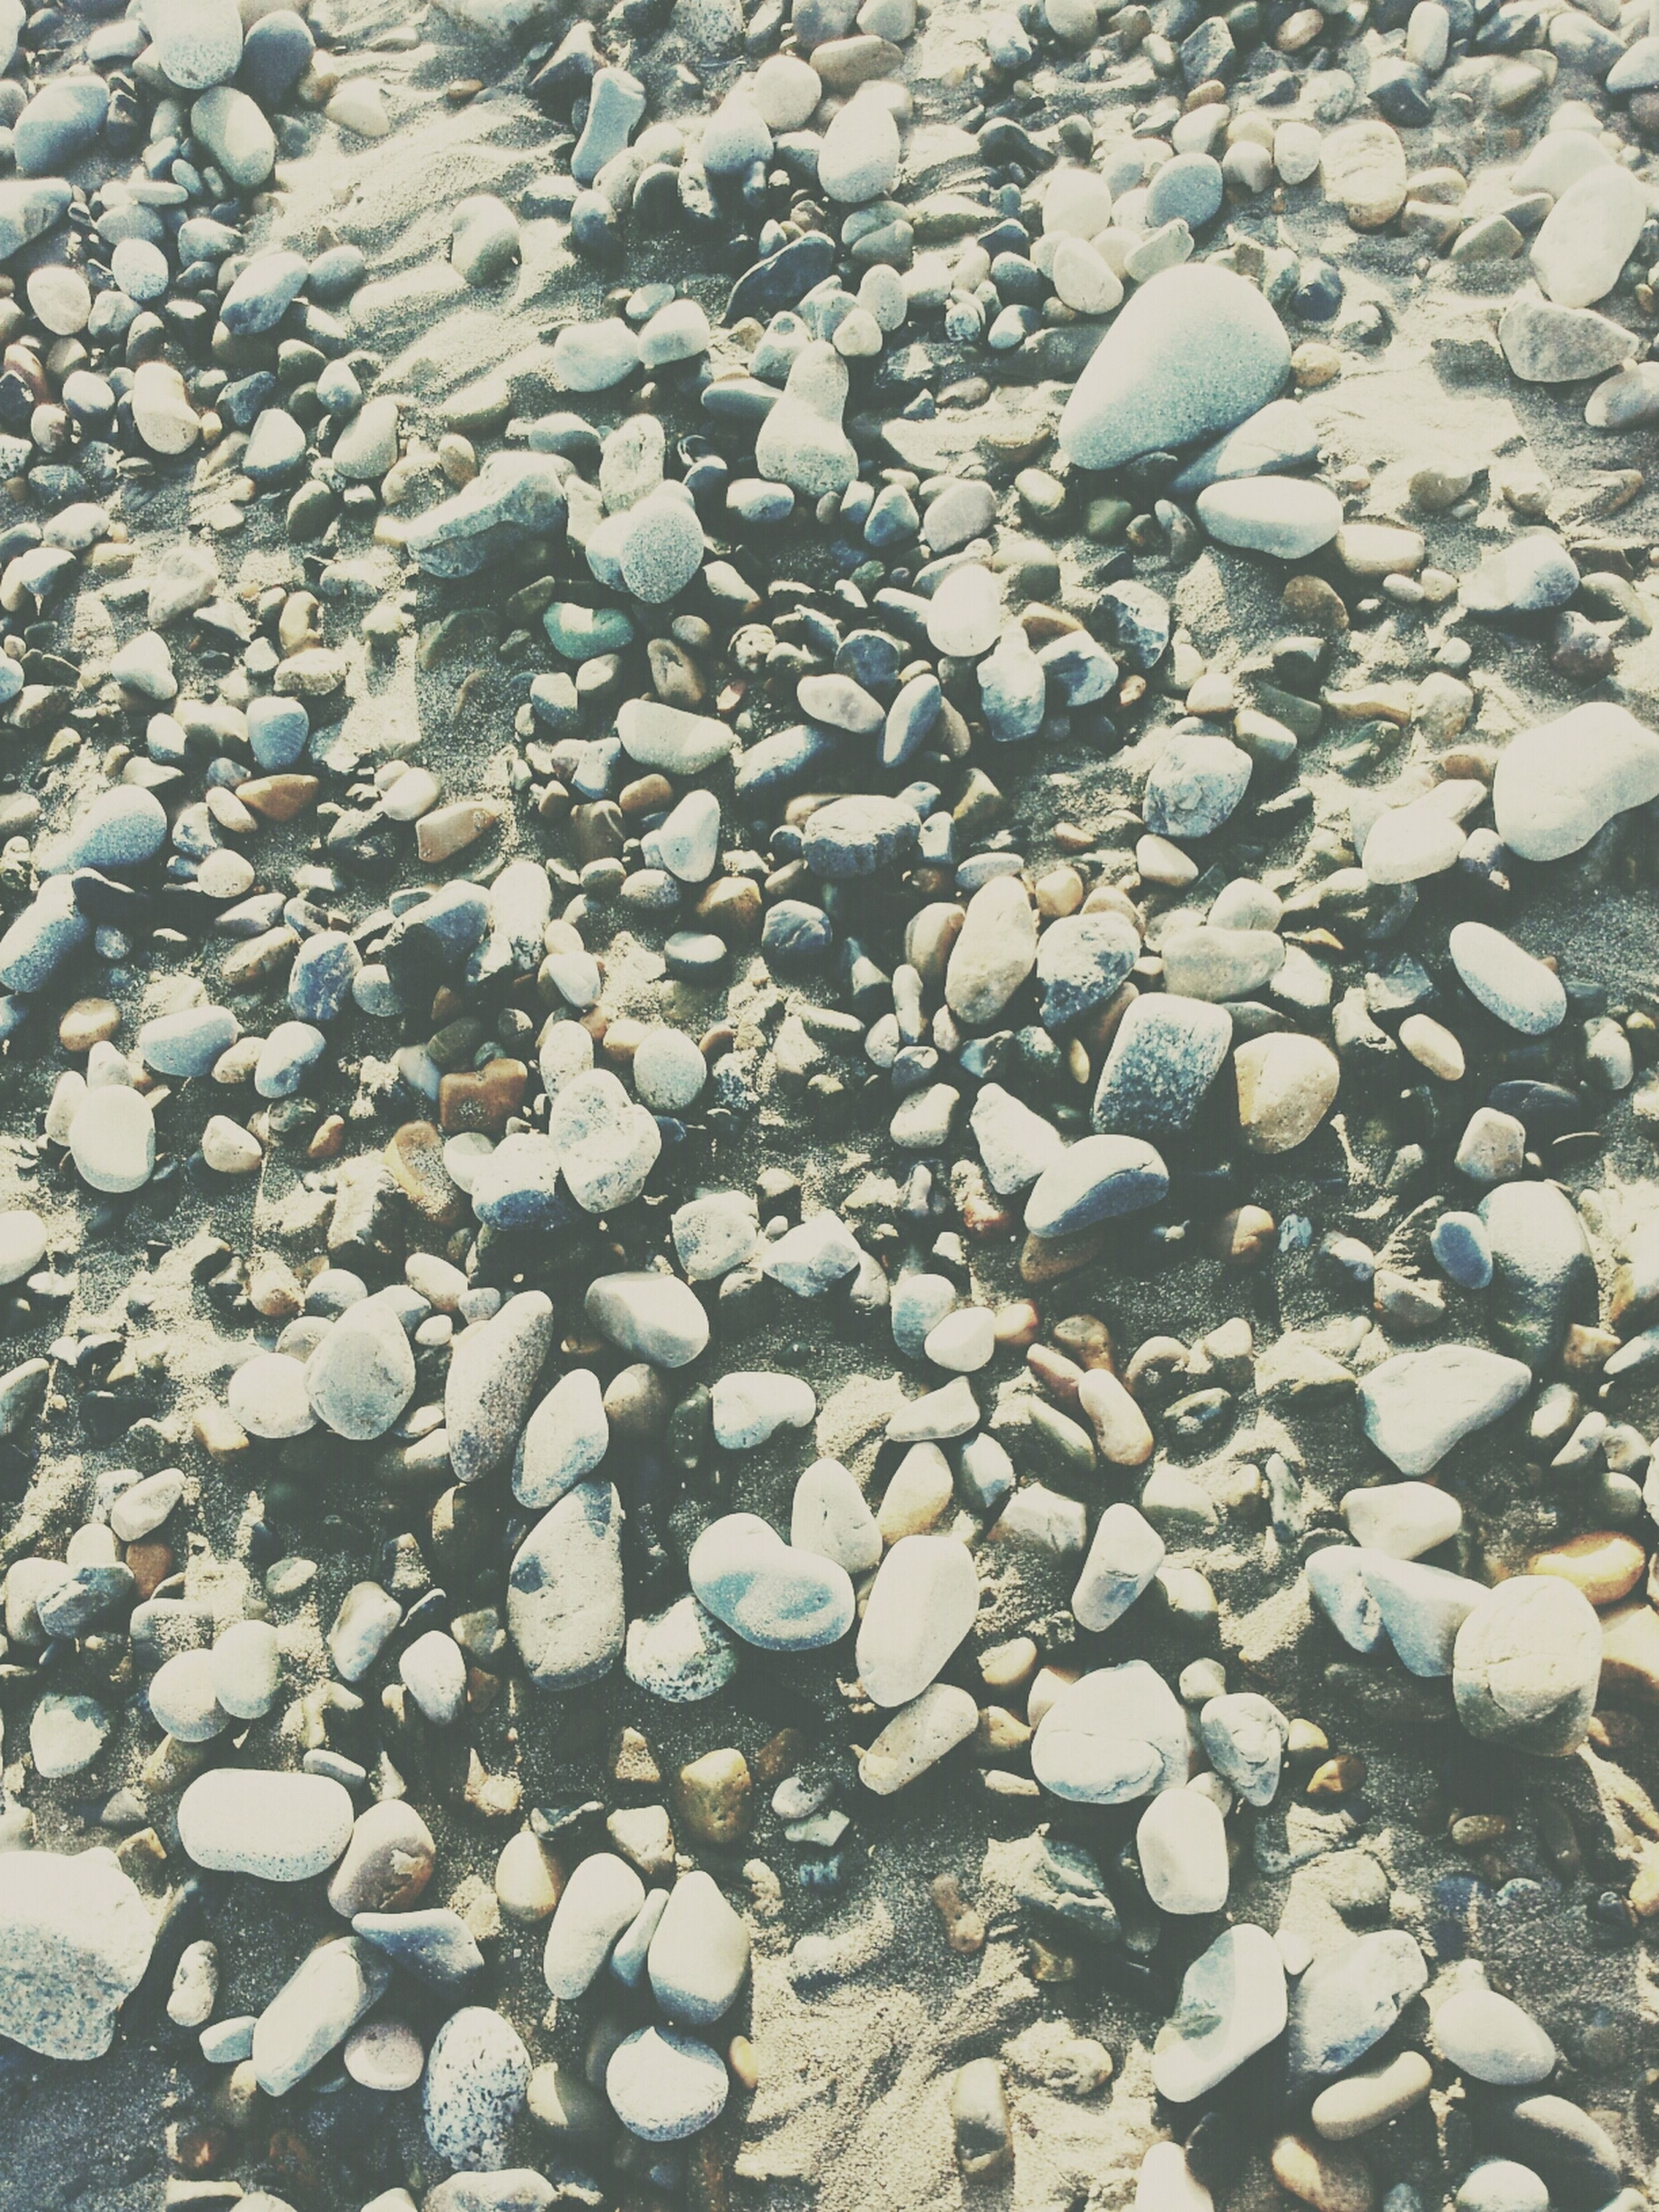 pebble, stone - object, abundance, high angle view, rock - object, nature, large group of objects, beach, full frame, backgrounds, day, stone, tranquility, outdoors, beauty in nature, no people, textured, sunlight, shore, rock